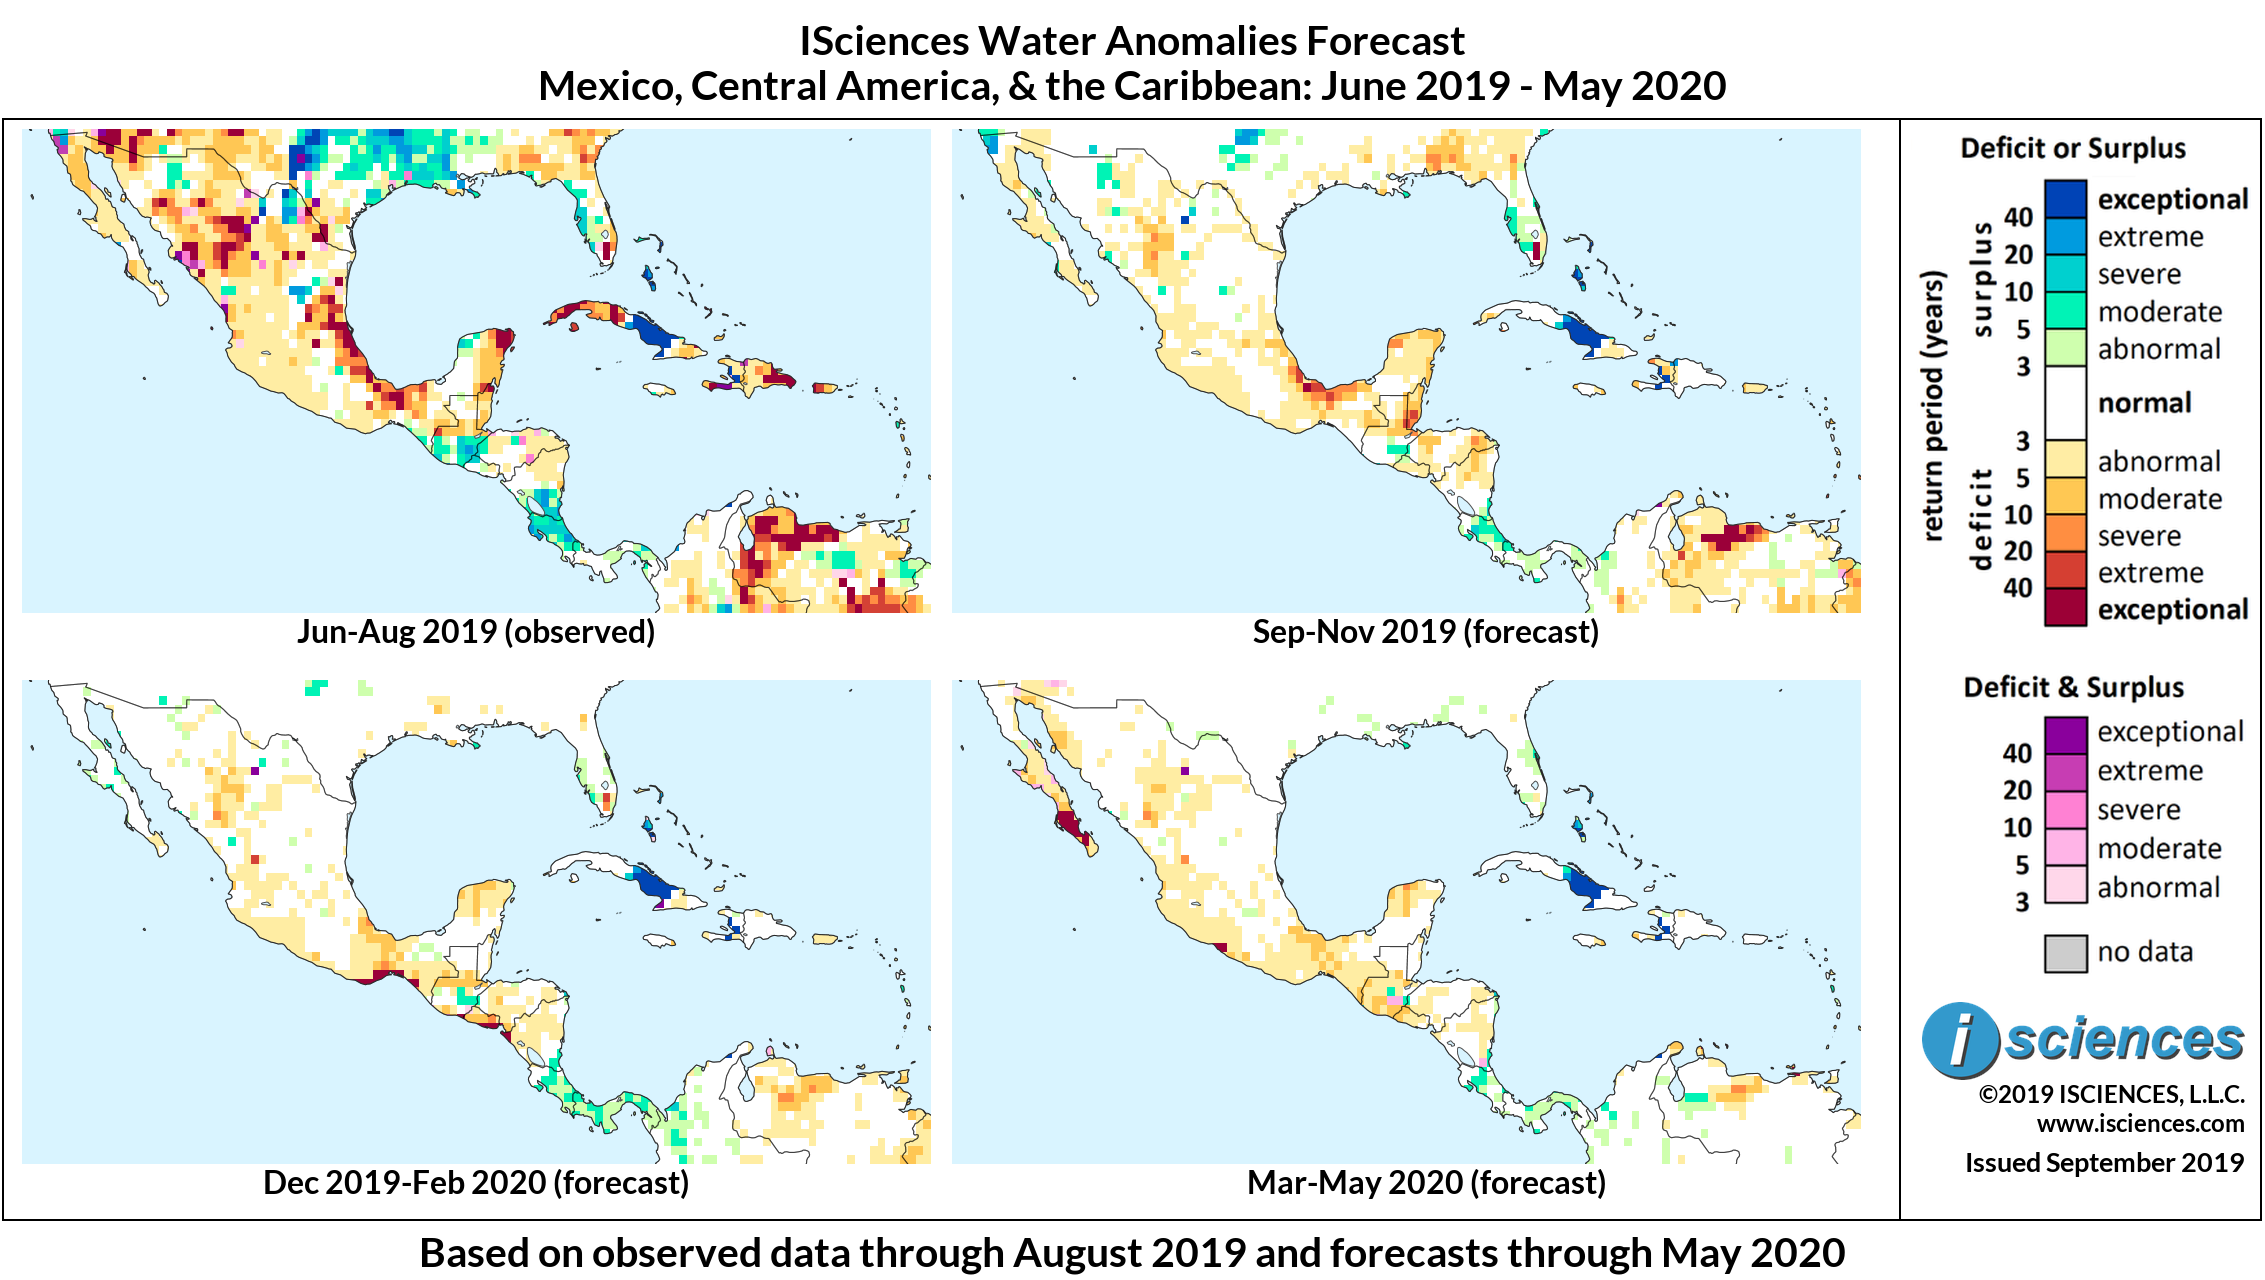 ISciences_Mexico_Central_America_Caribbean_Composite_Adjusted_201906-202005_3mo_panel.png